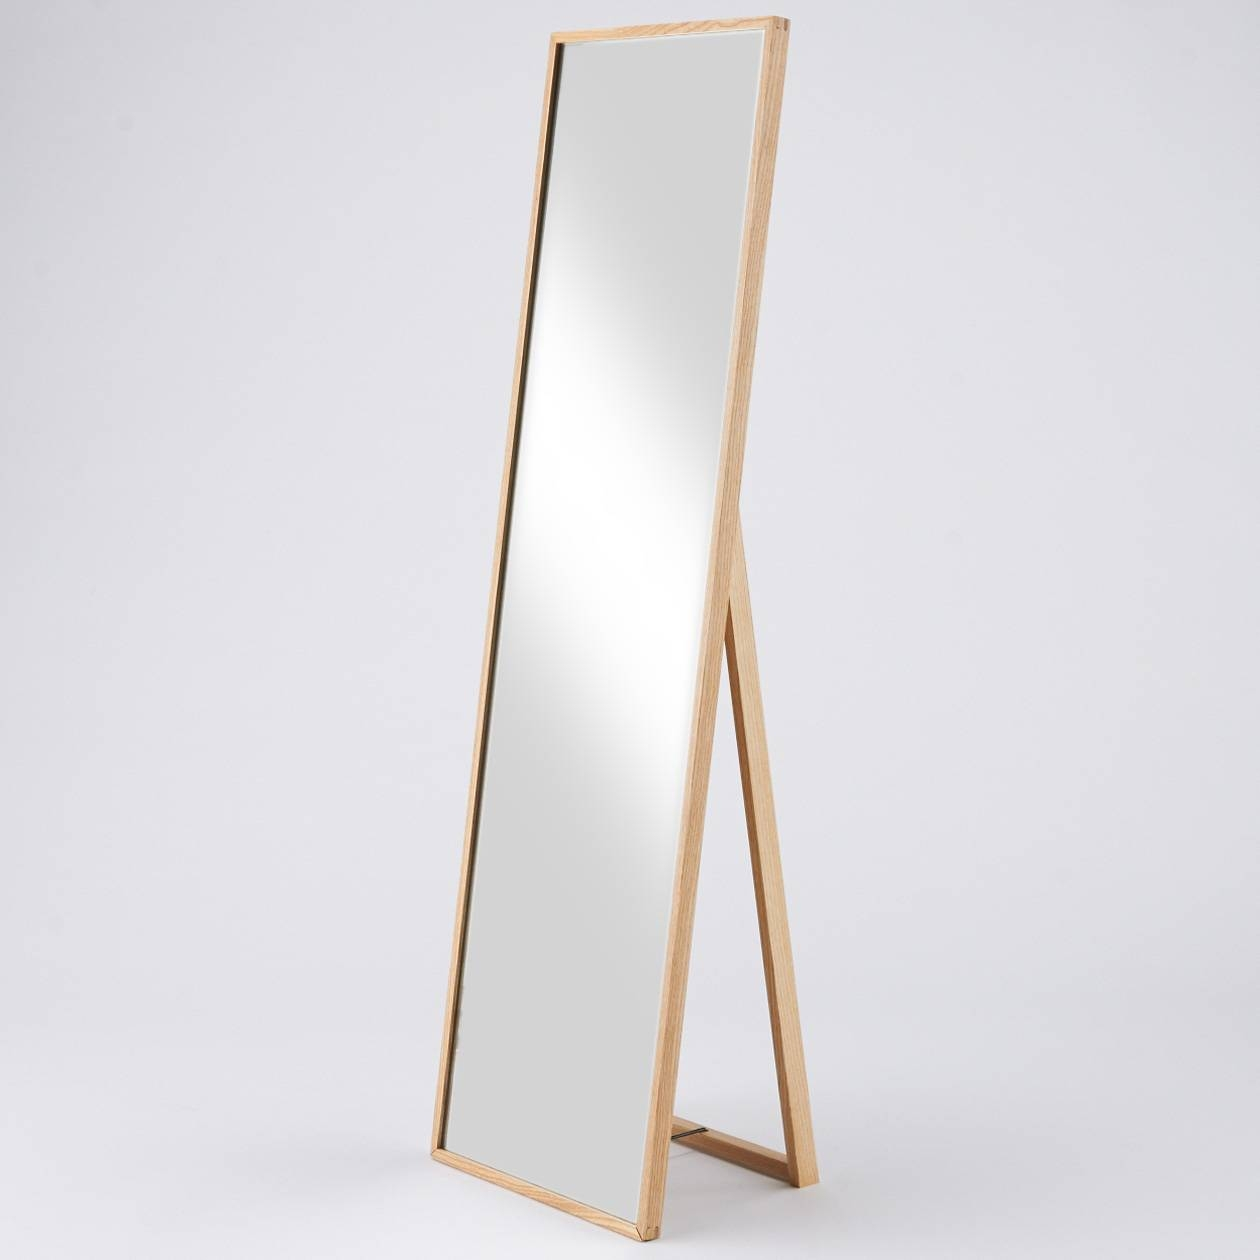 Free Standing Mirror Full Length 2 Fascinating Ideas On Mirror A intended for Full Length Free Standing Mirrors With Drawer (Image 14 of 25)